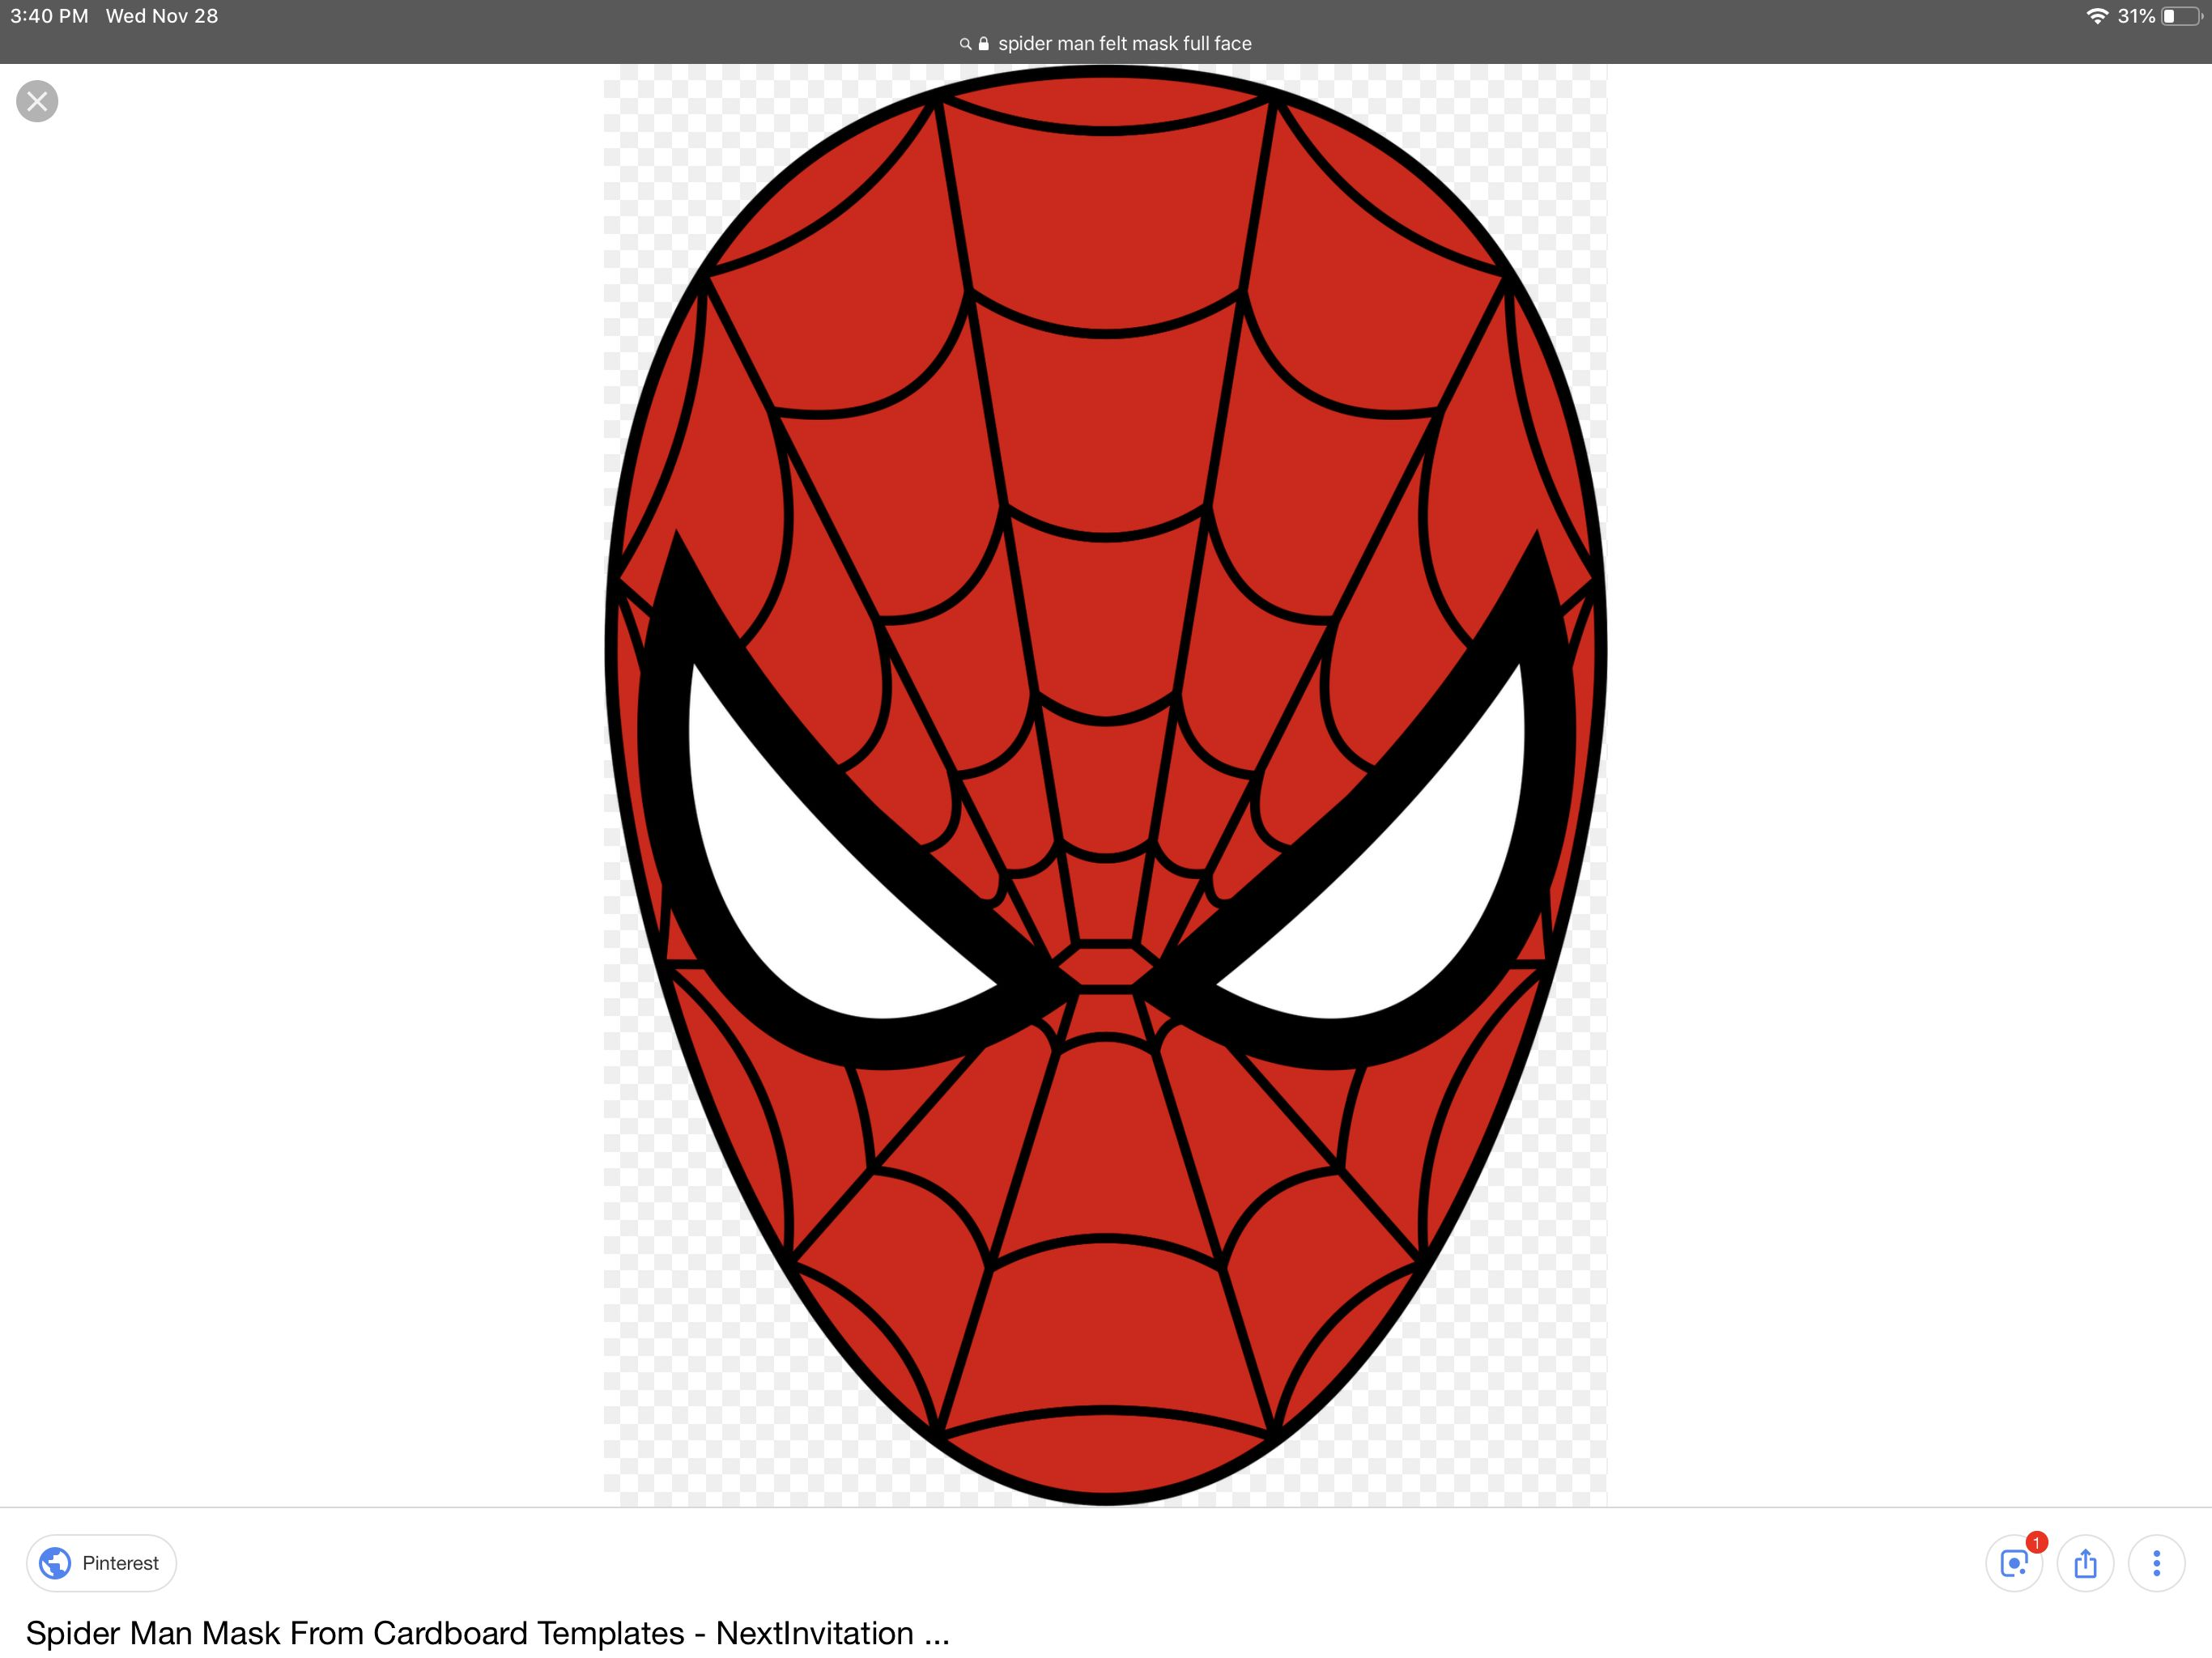 Spider man mask template | Spiderman, Mask template ...